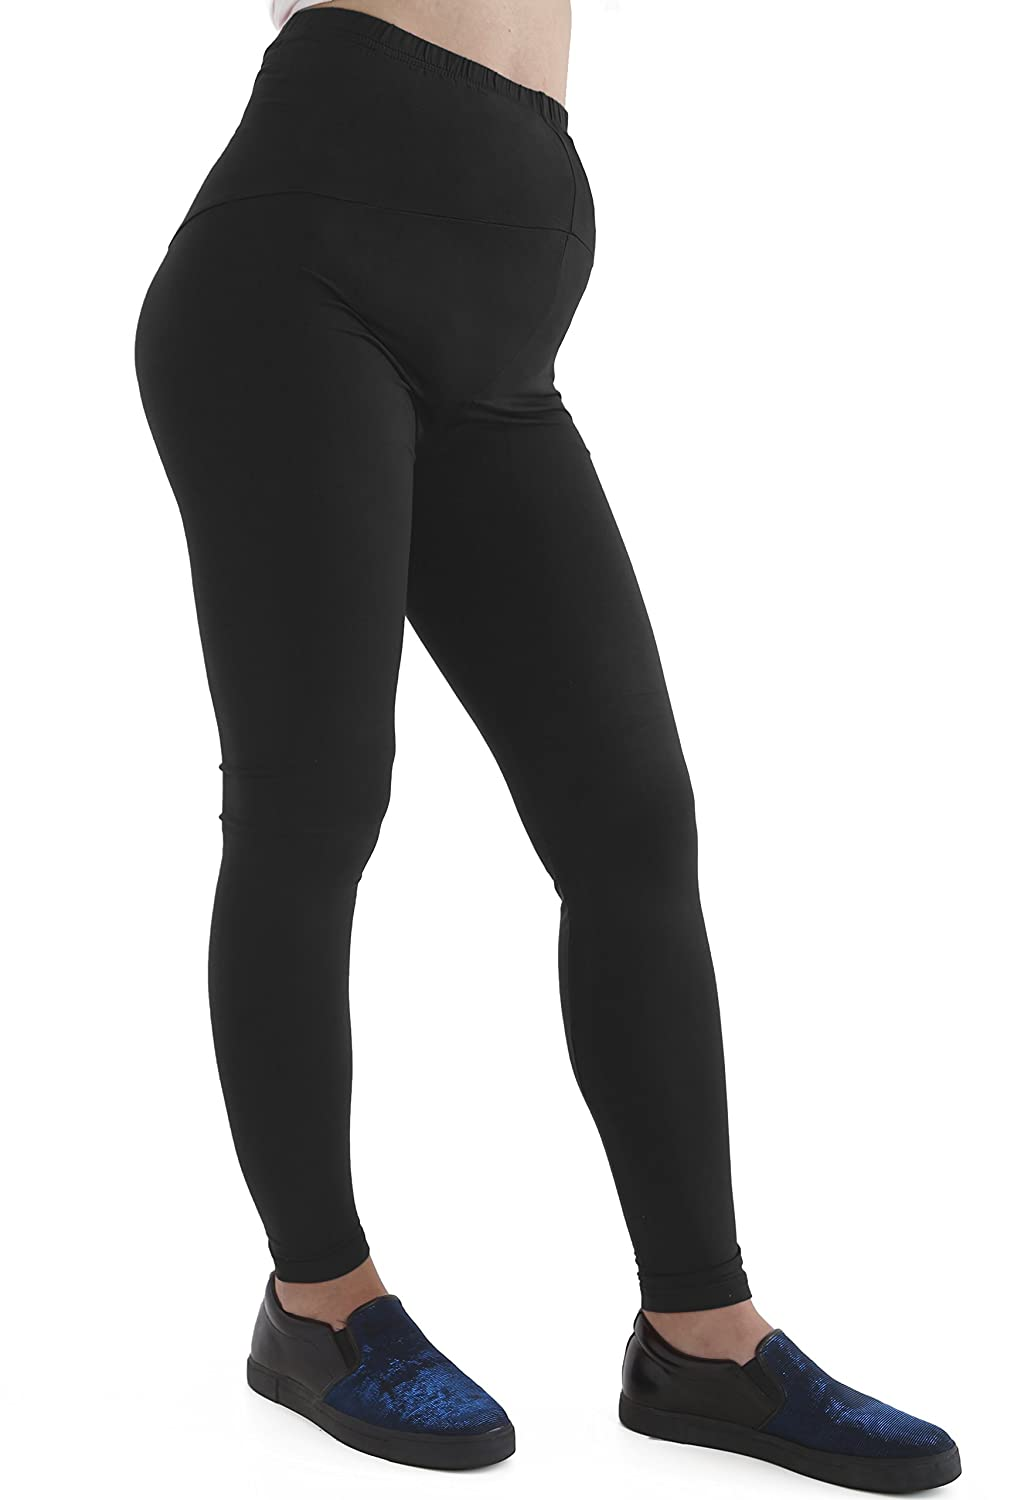 GW CLASSYOUTFIT® Womens Ladies Maternity Leggings Full Ankle Length Stretchy Over Bump Pregnancy Pants (M-L 12-14, BLACK)